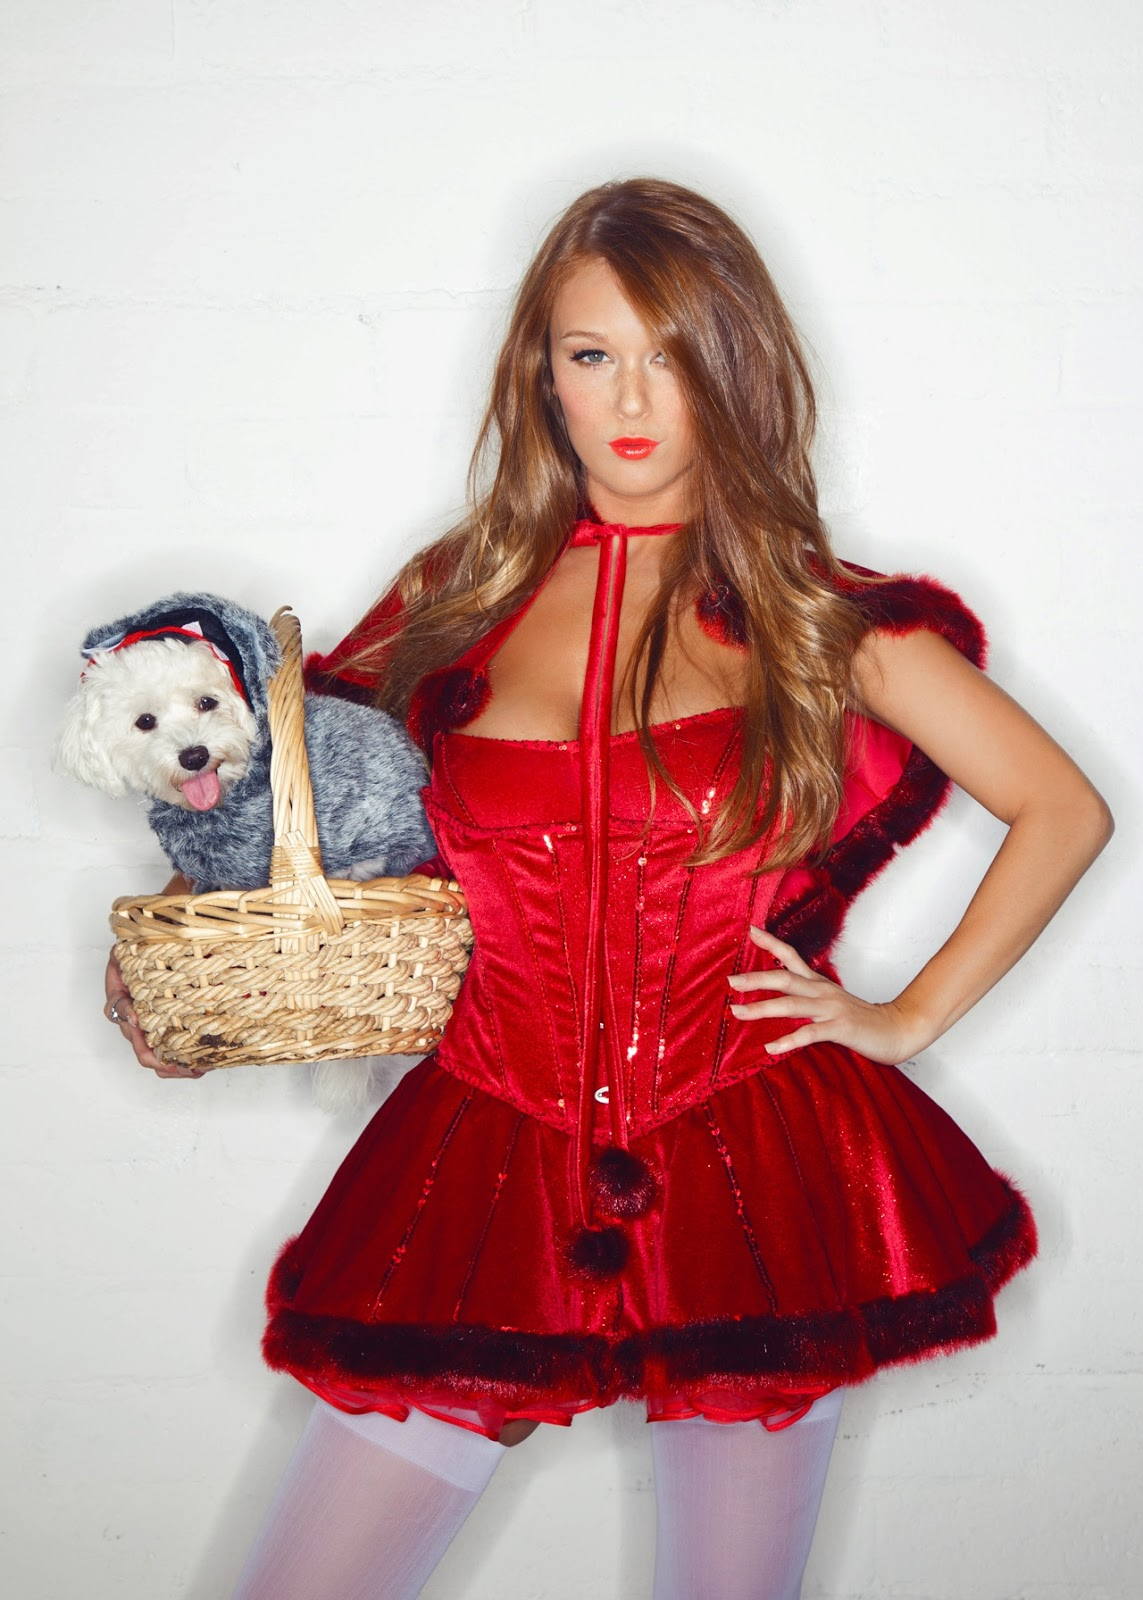 The Mirror Leanna Decker Lady In Red